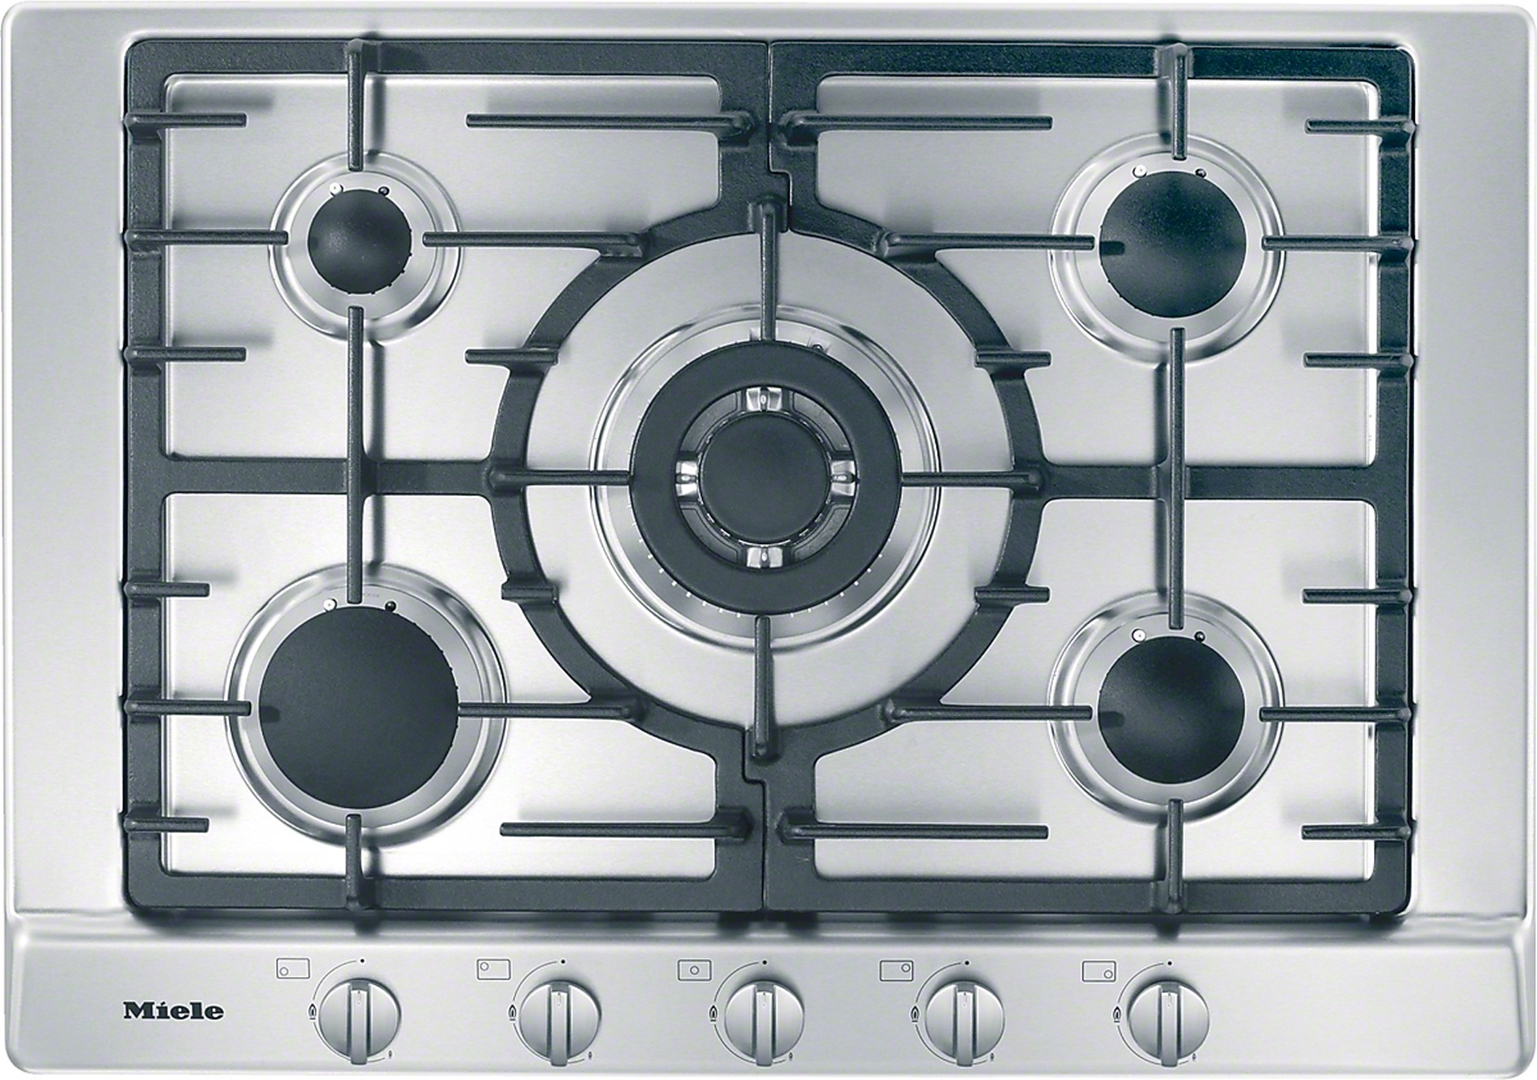 miele km 2032 g gas hob. Black Bedroom Furniture Sets. Home Design Ideas